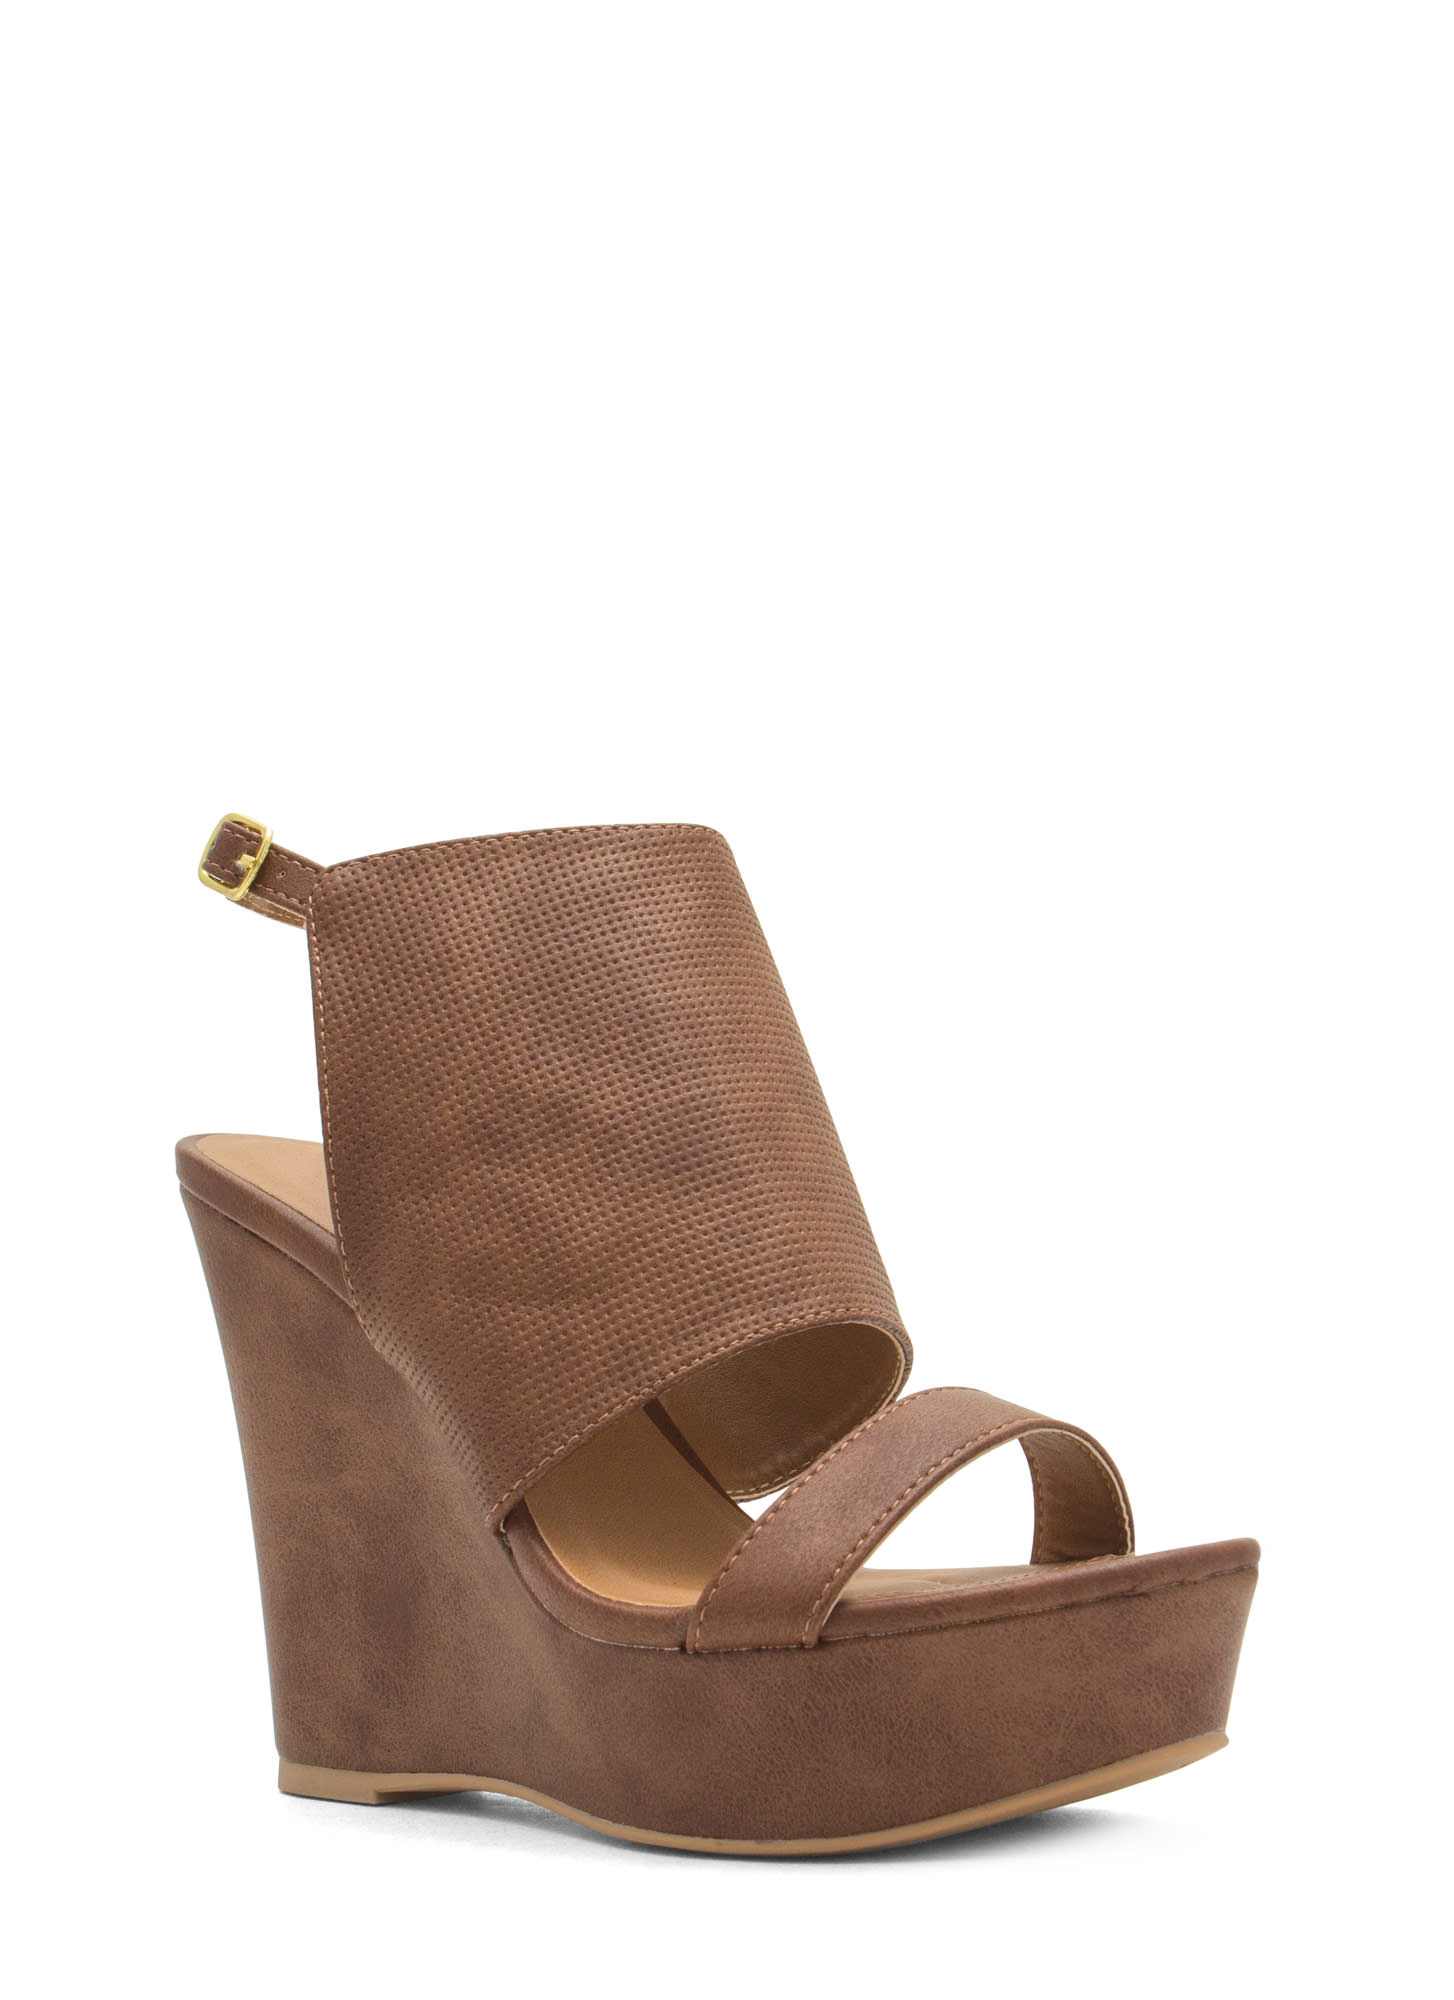 Shield Of Approval Textured Wedges COGNAC